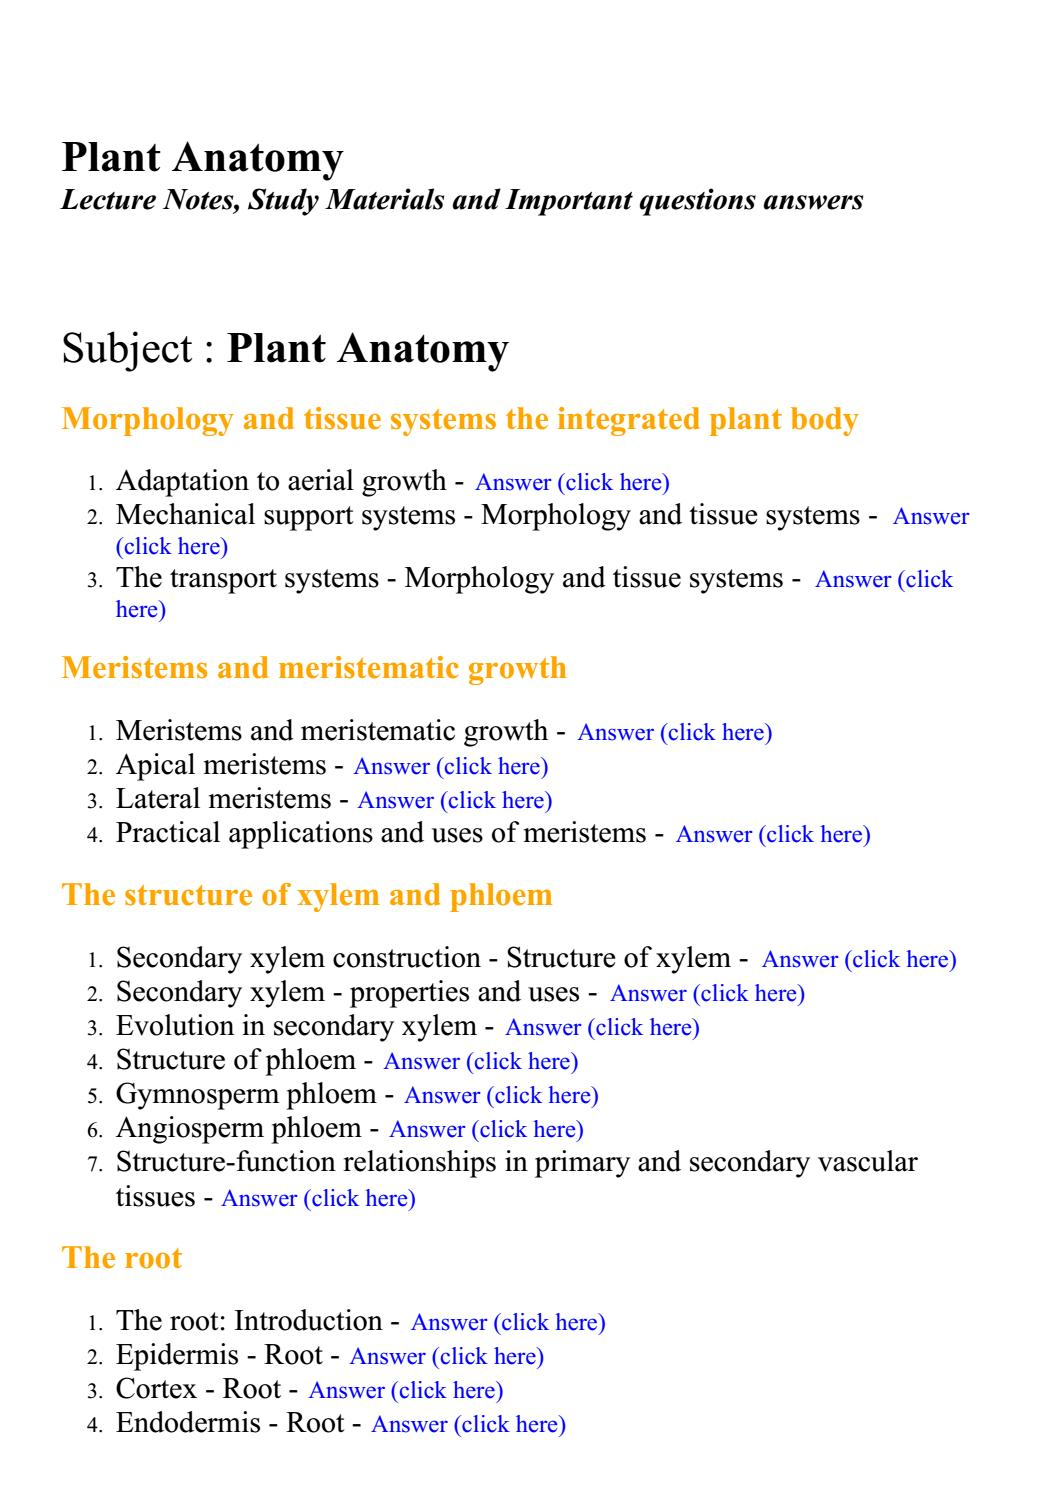 Plant anatomy - Lecture Notes, Study Materials and Important ...